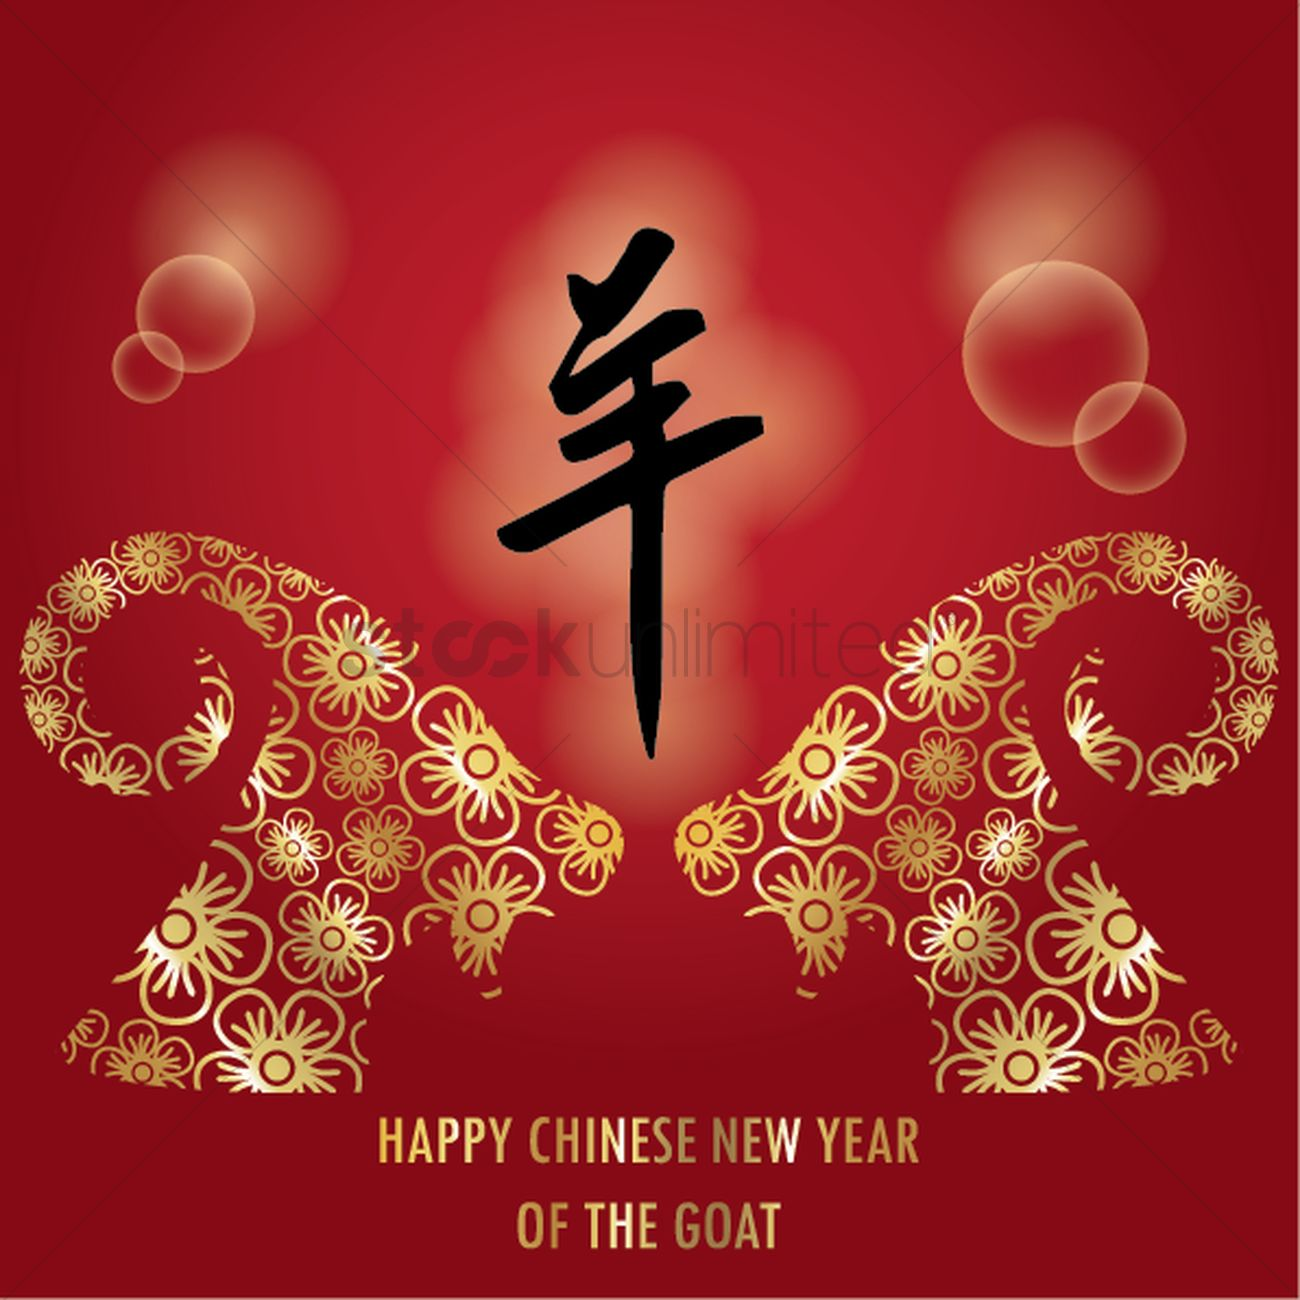 Year Of Goat Chinese New Year Greetings Vector Image 1411677